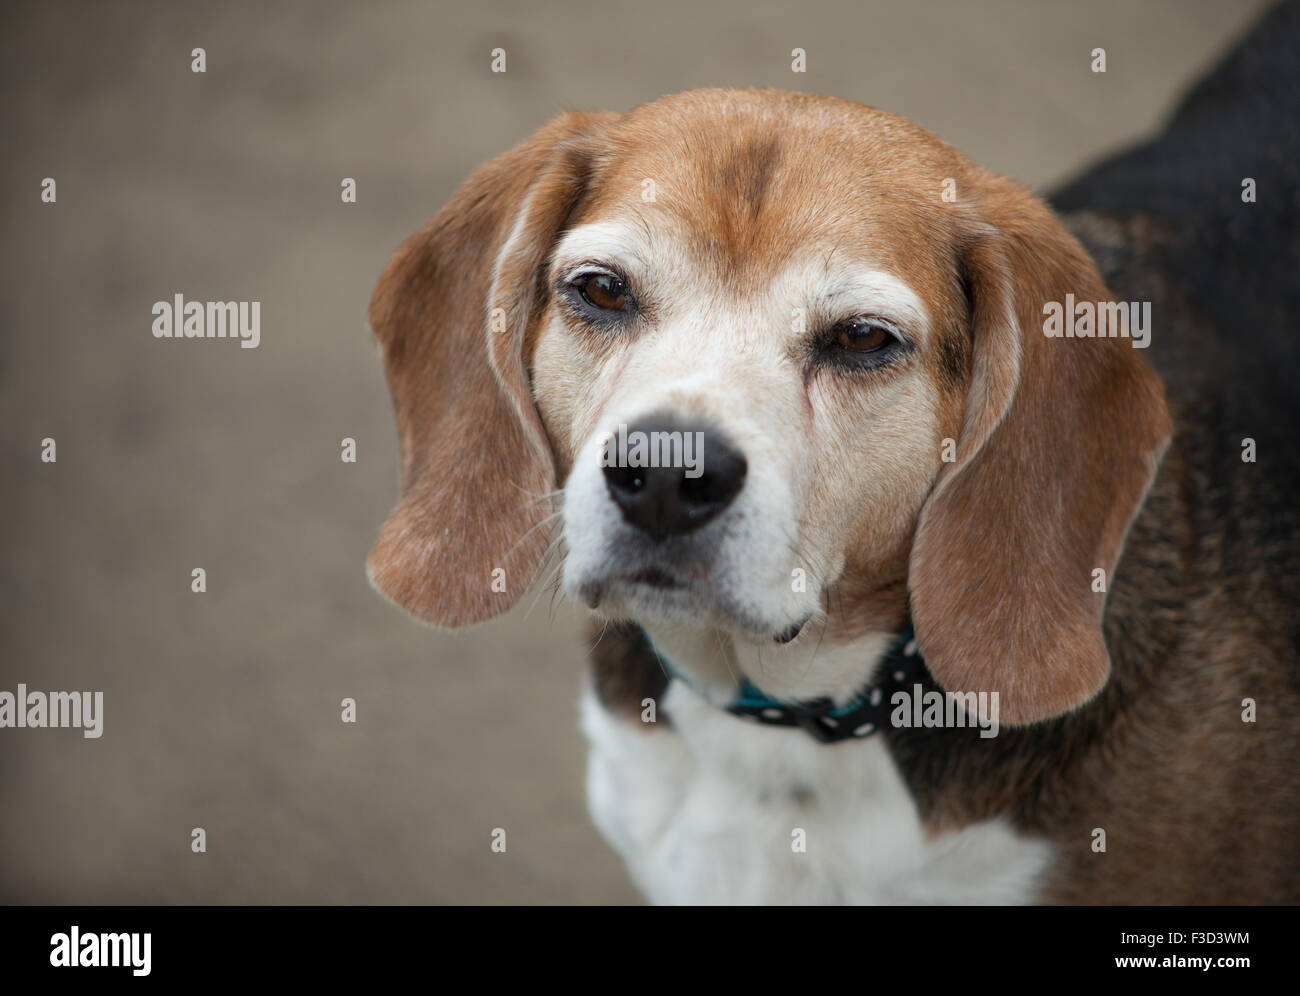 elderly beagle dog partial body looks up at camera with sleepy squinting eyes against a cement background. - Stock Image